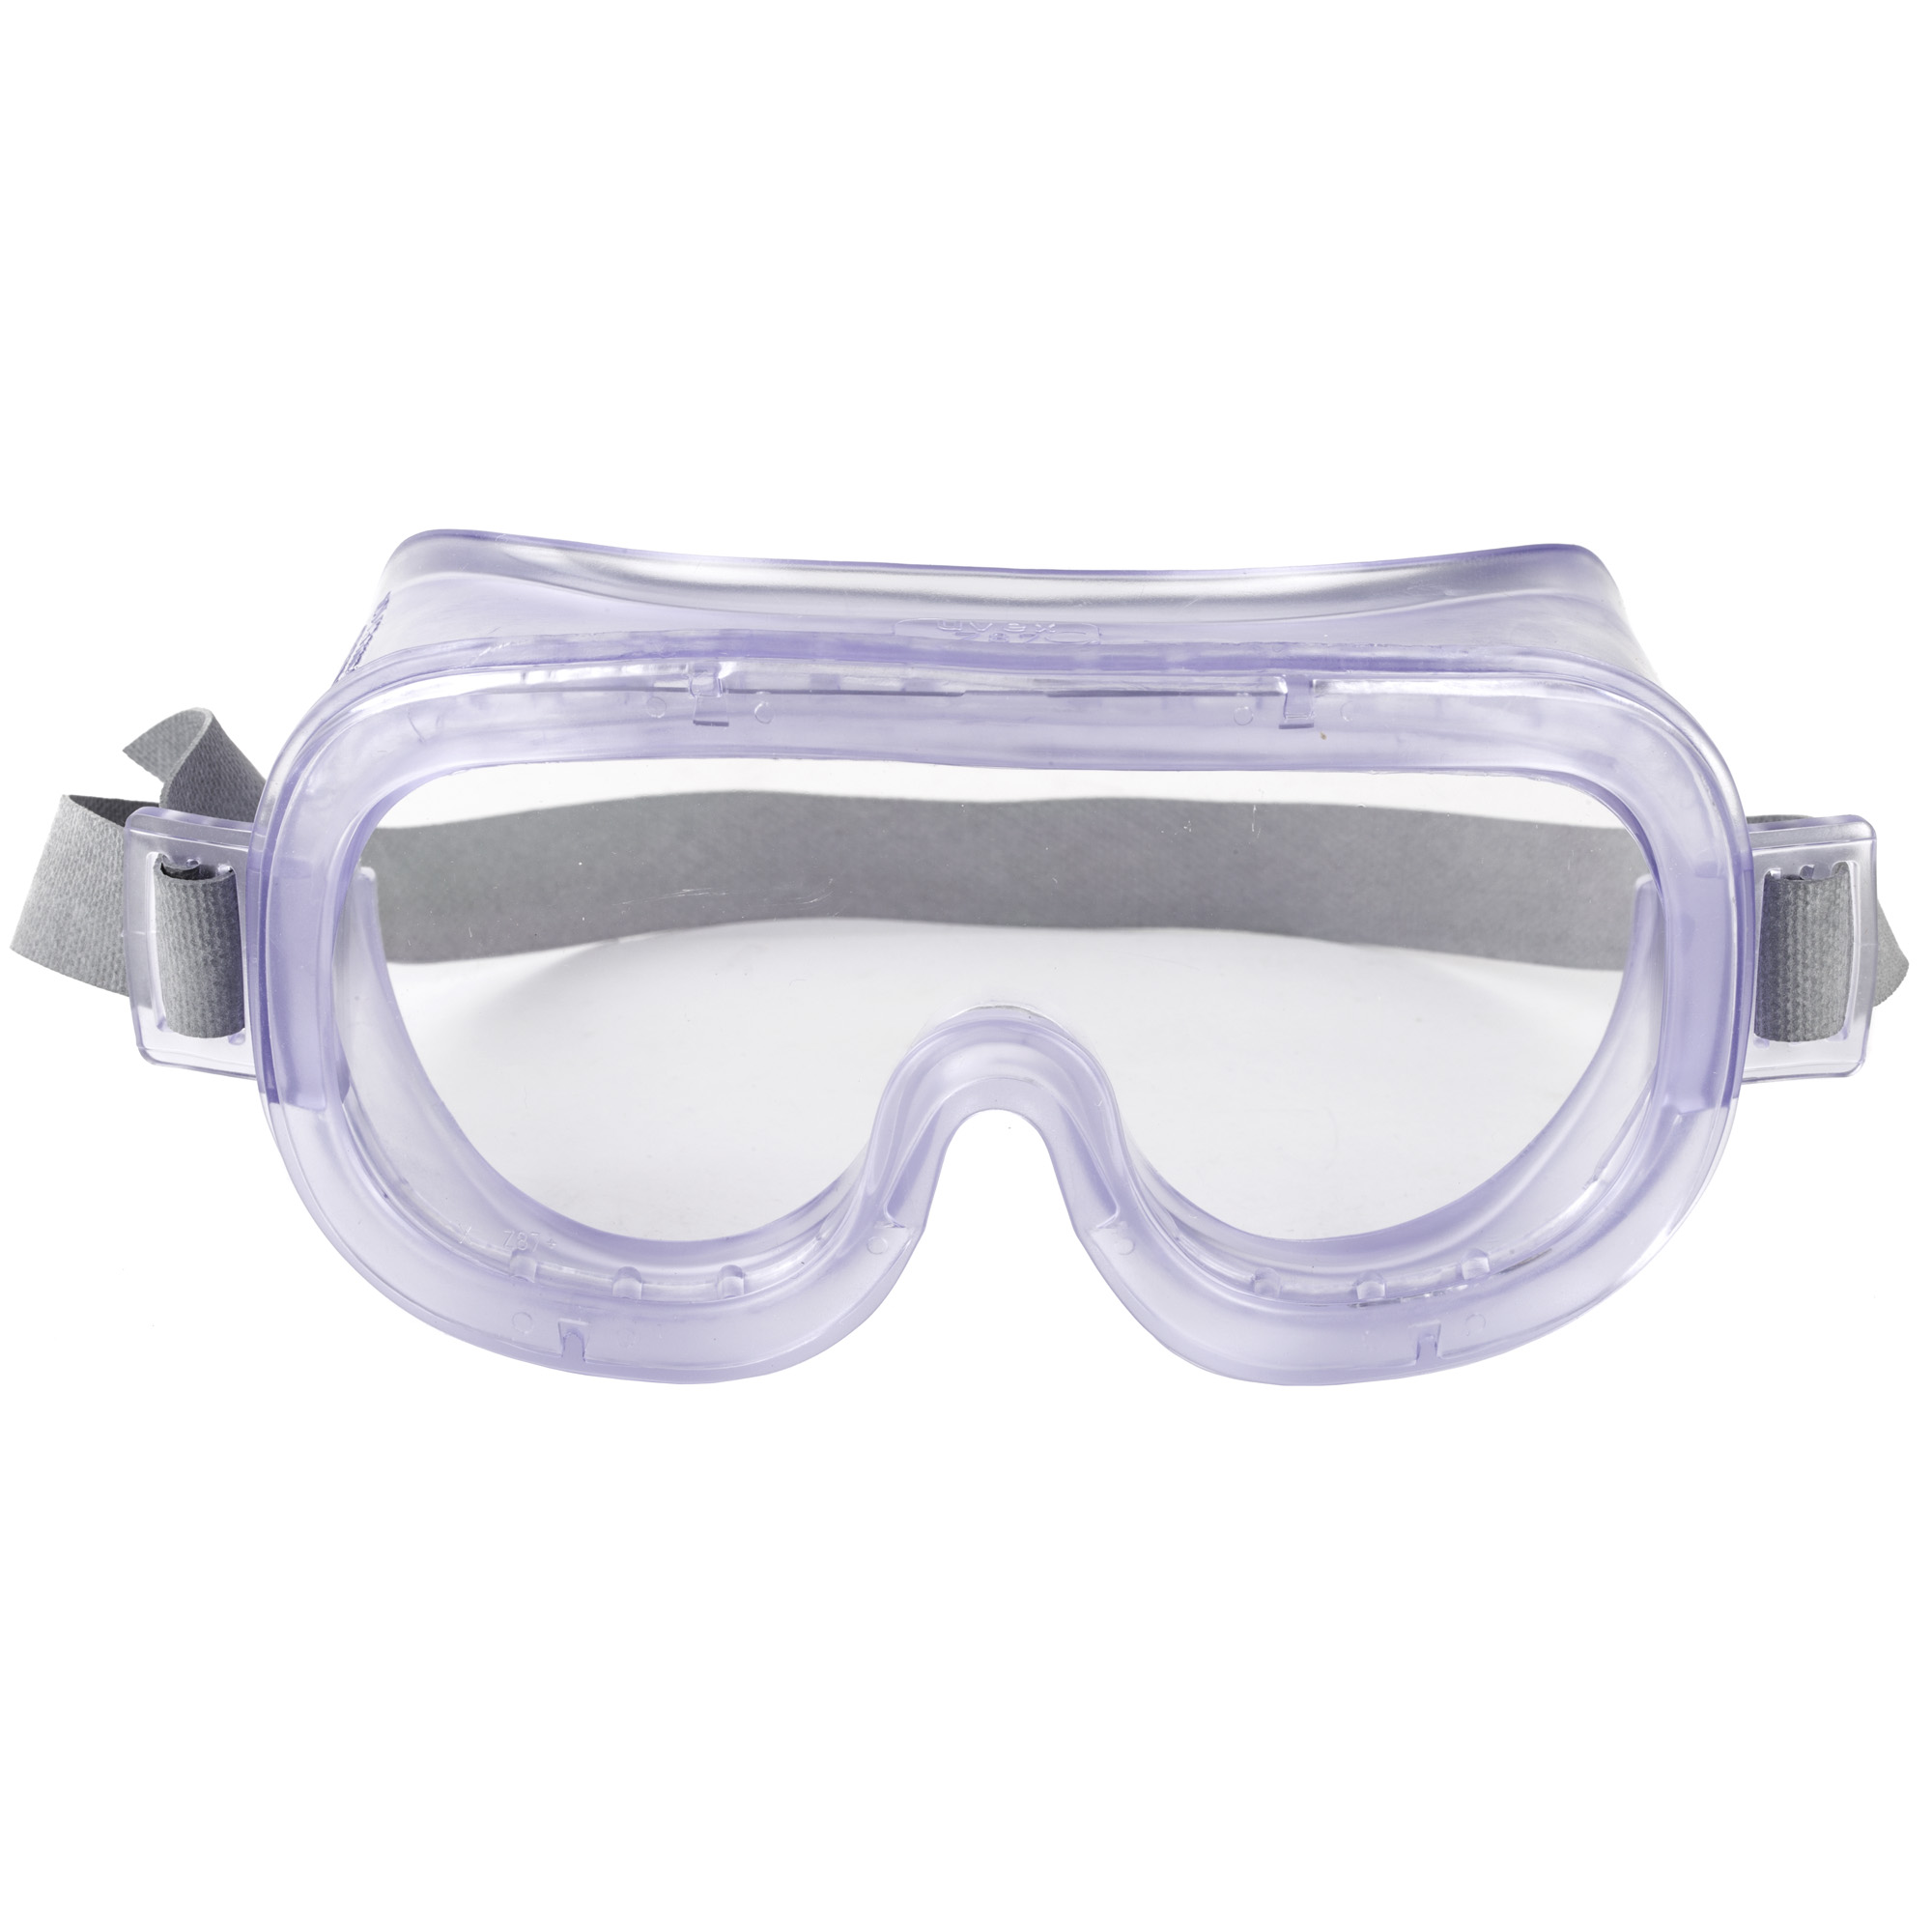 Uvex Classic Safety Goggles fit over most Rx spectacles and are ANSI Z87.1+ 2015 Certified.